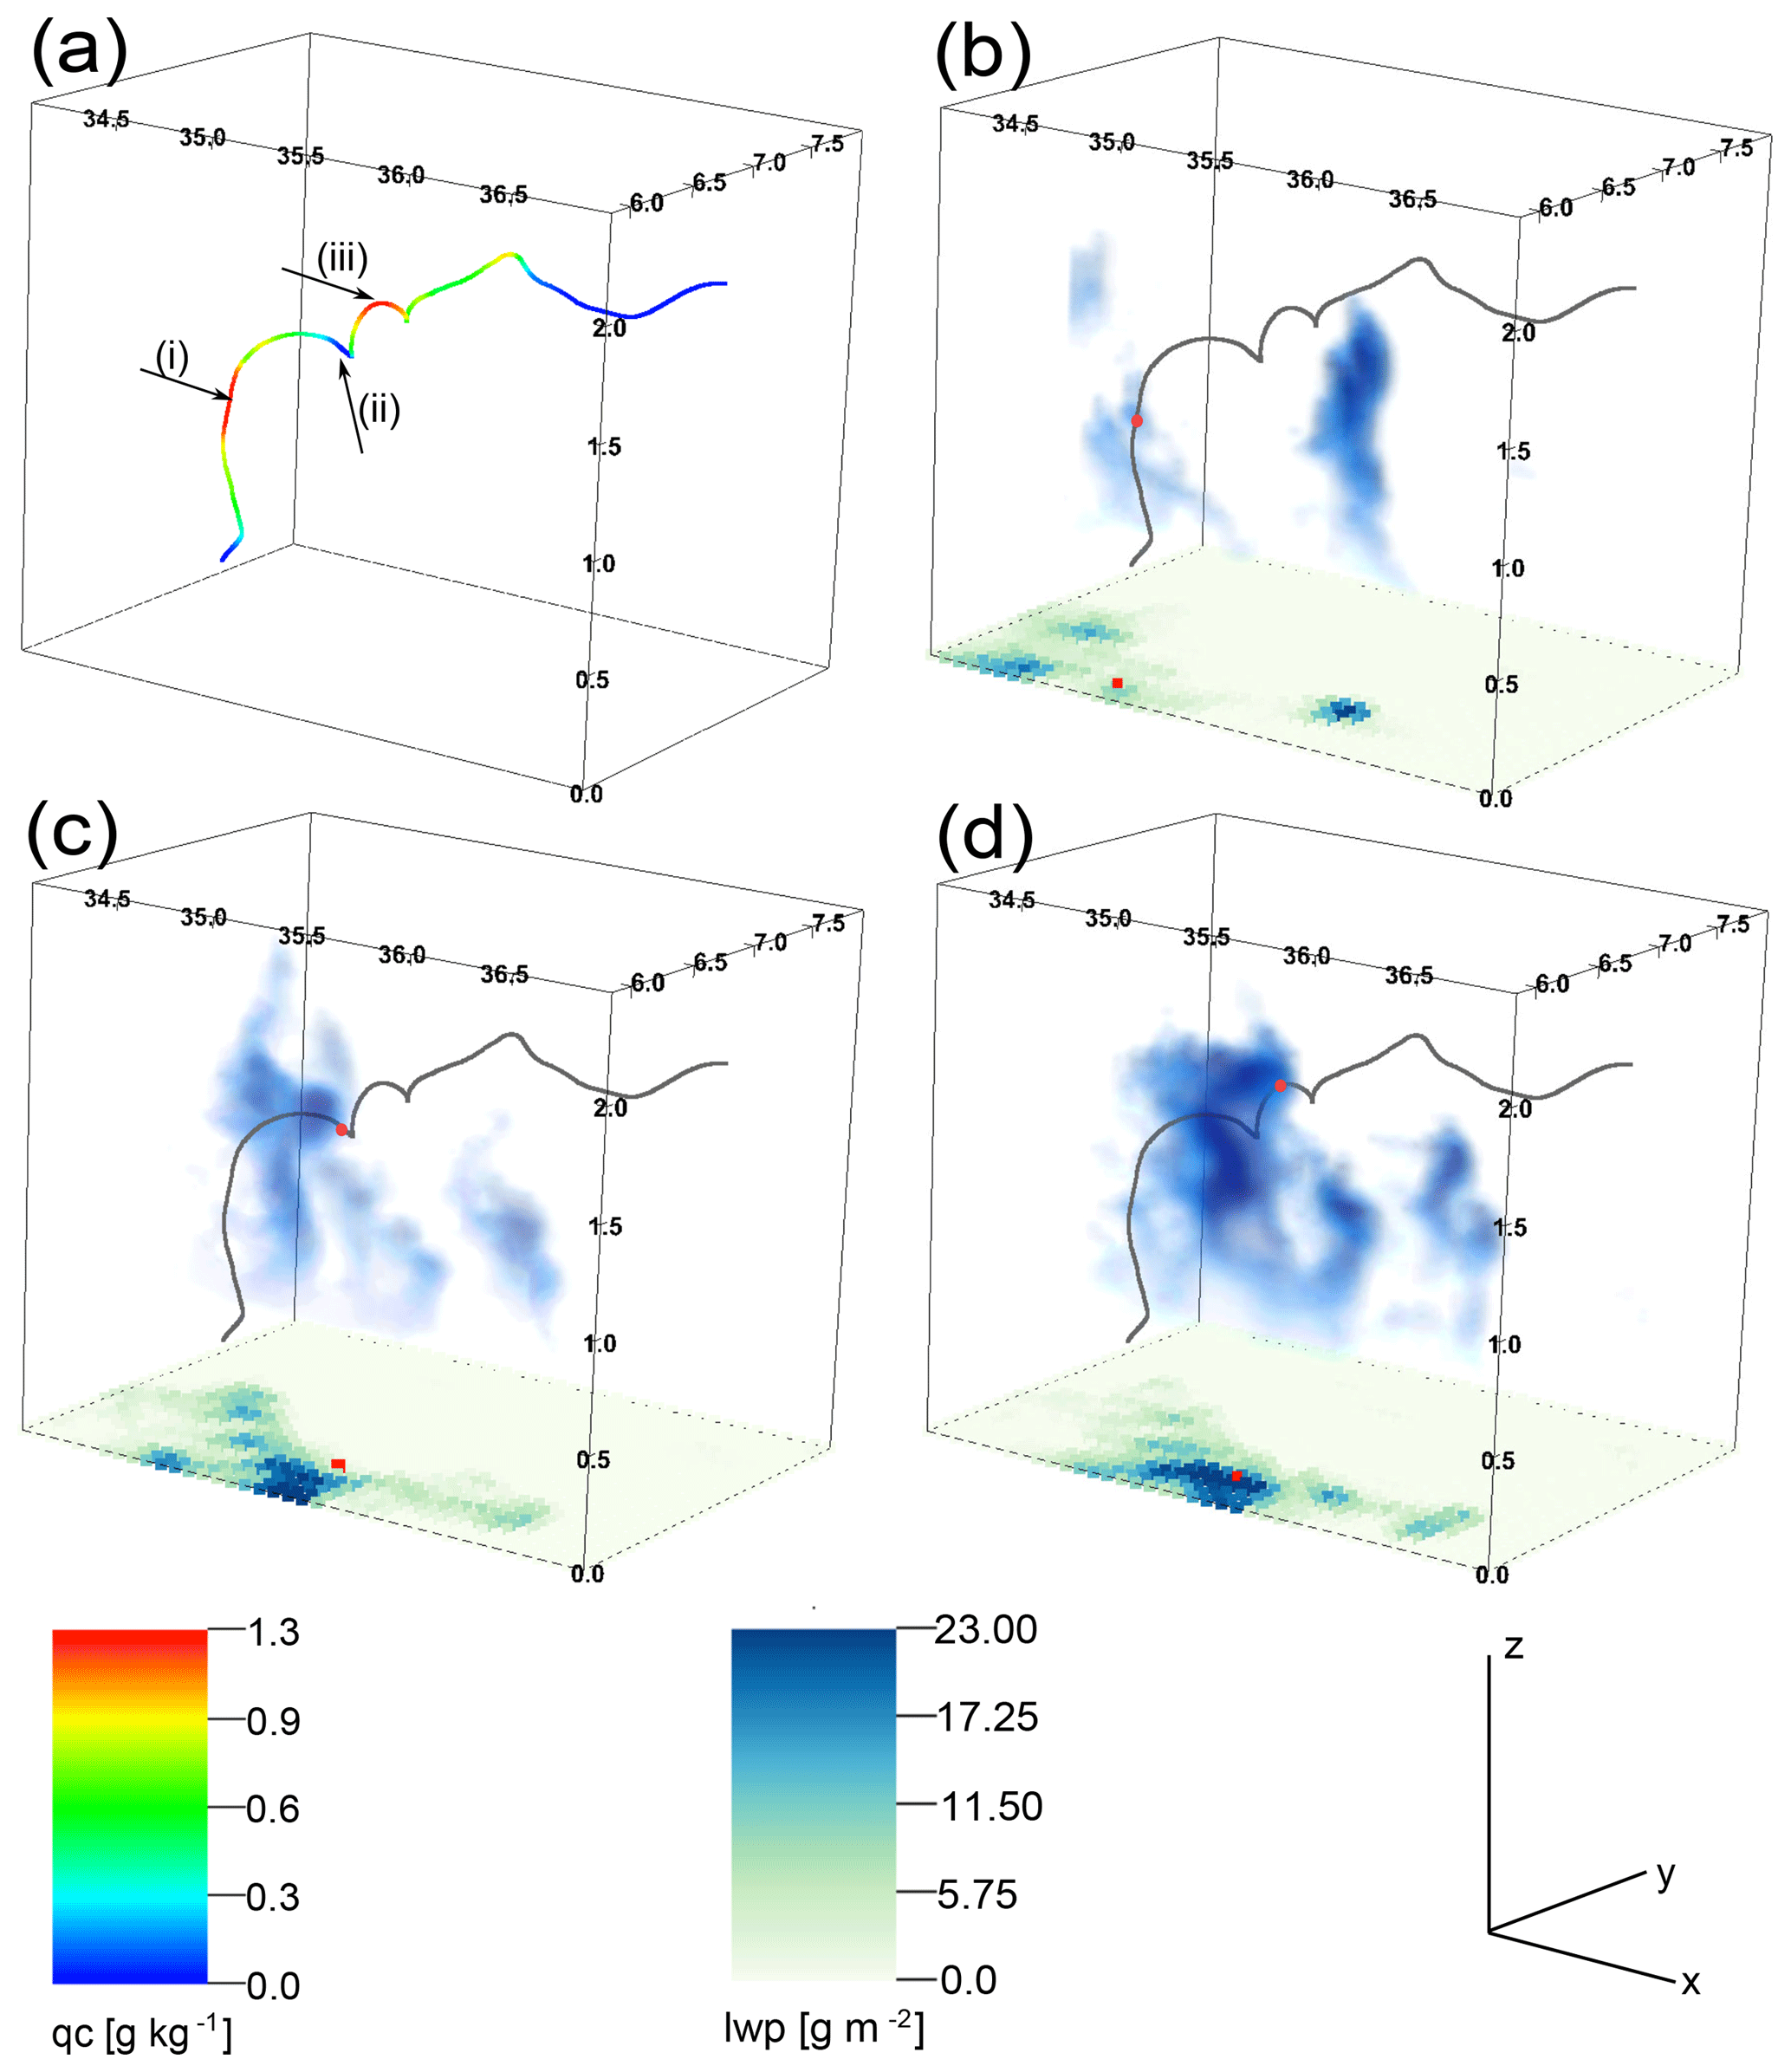 ACP - Cloud droplet growth in shallow cumulus clouds considering 1-D